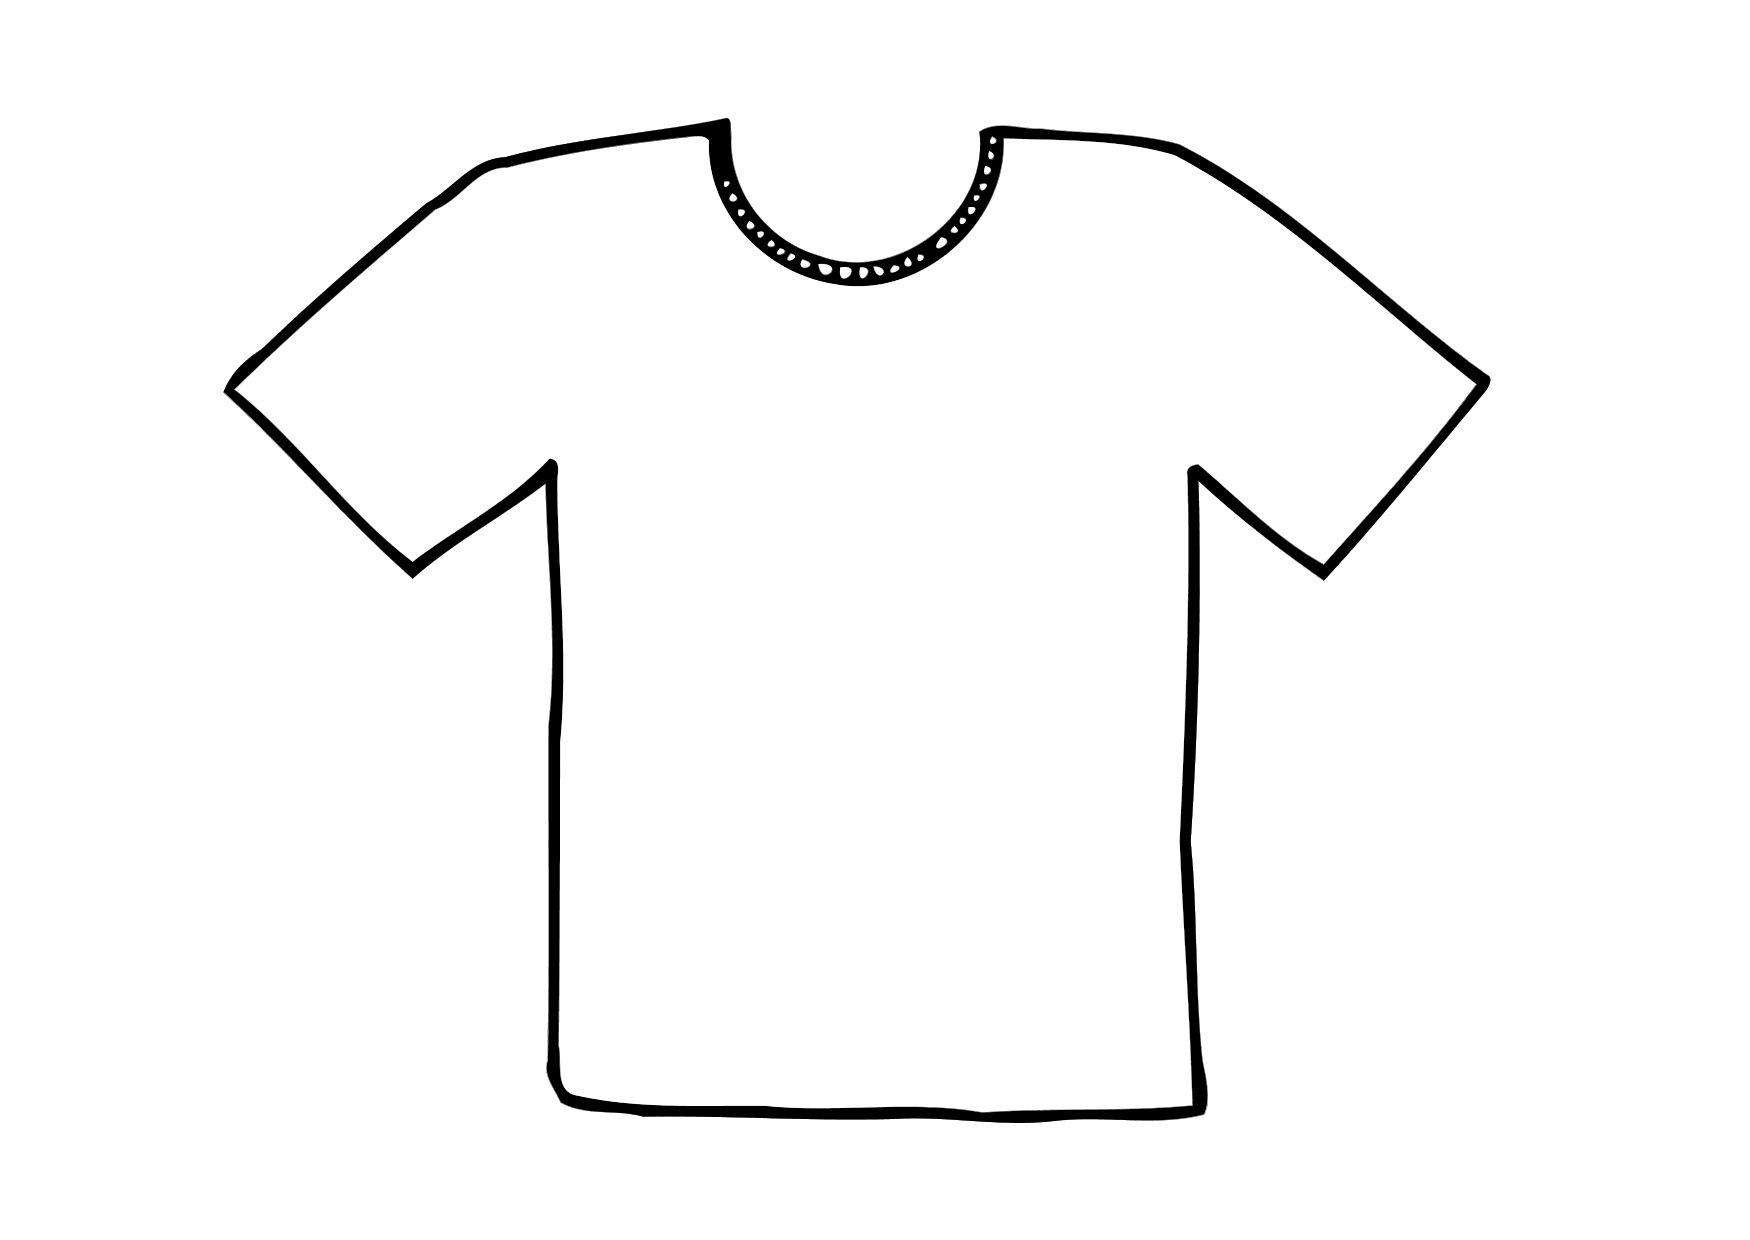 coloring pages for t shirts blank t shirt coloring sheet printable for t pages coloring shirts